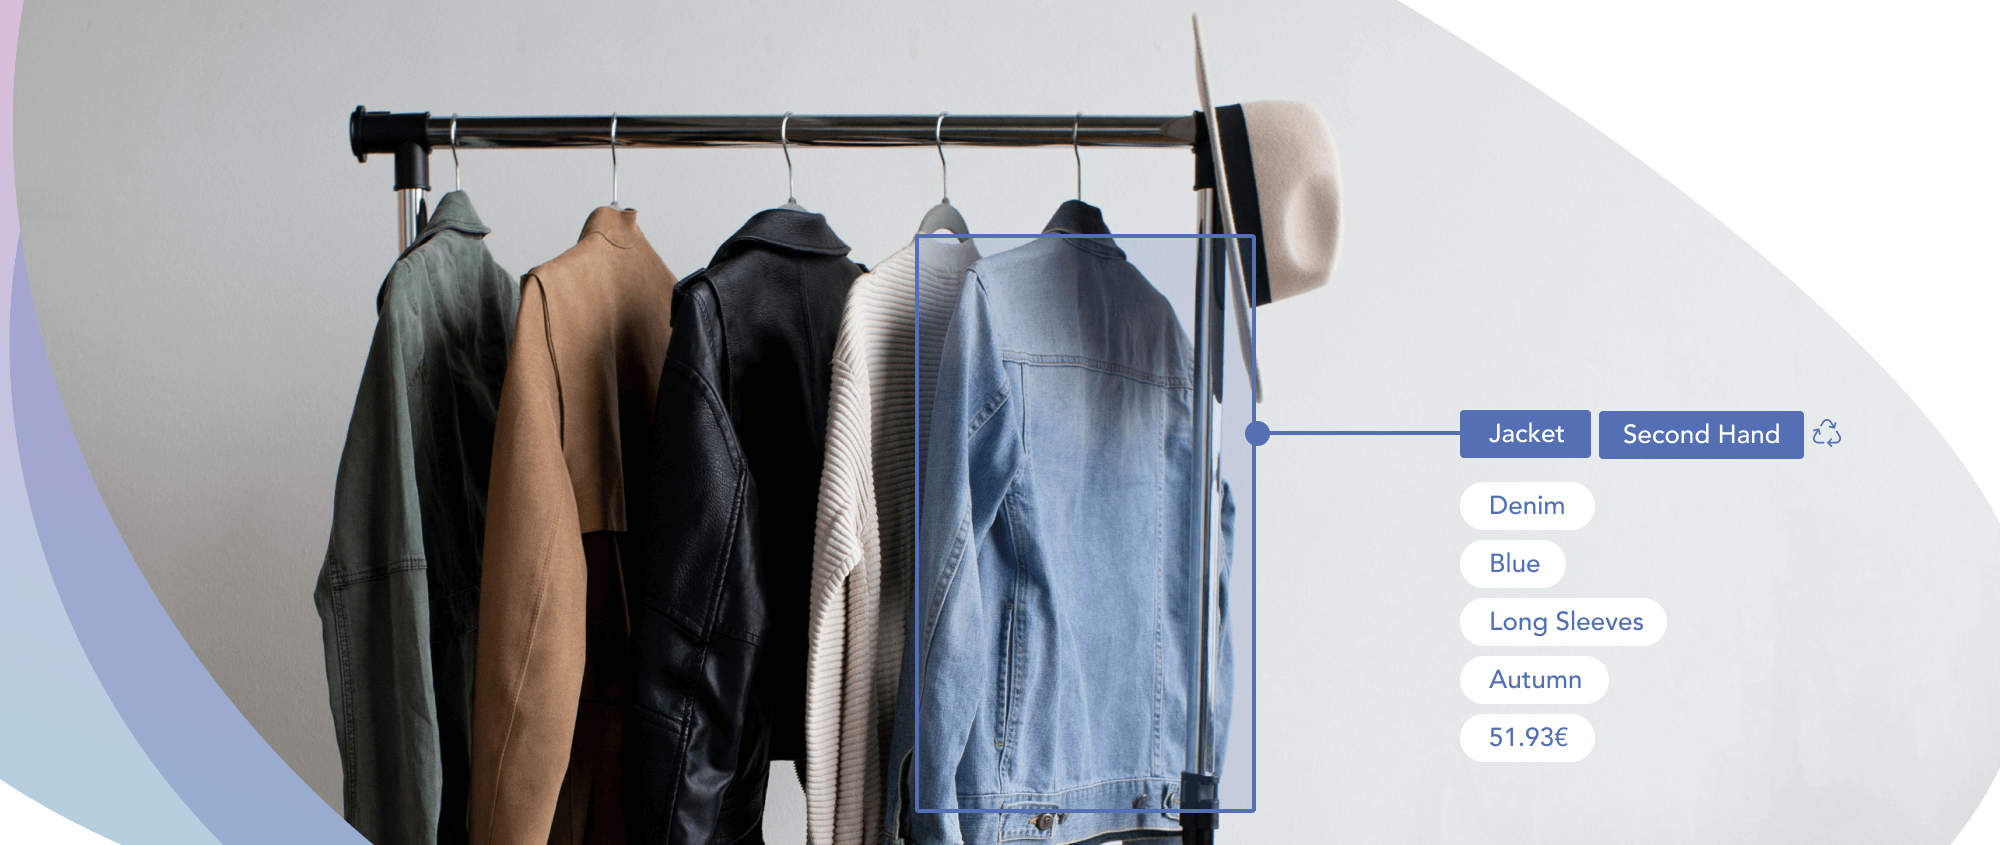 Image of a clothing rack showing jackets and automated tags for one denim jacket